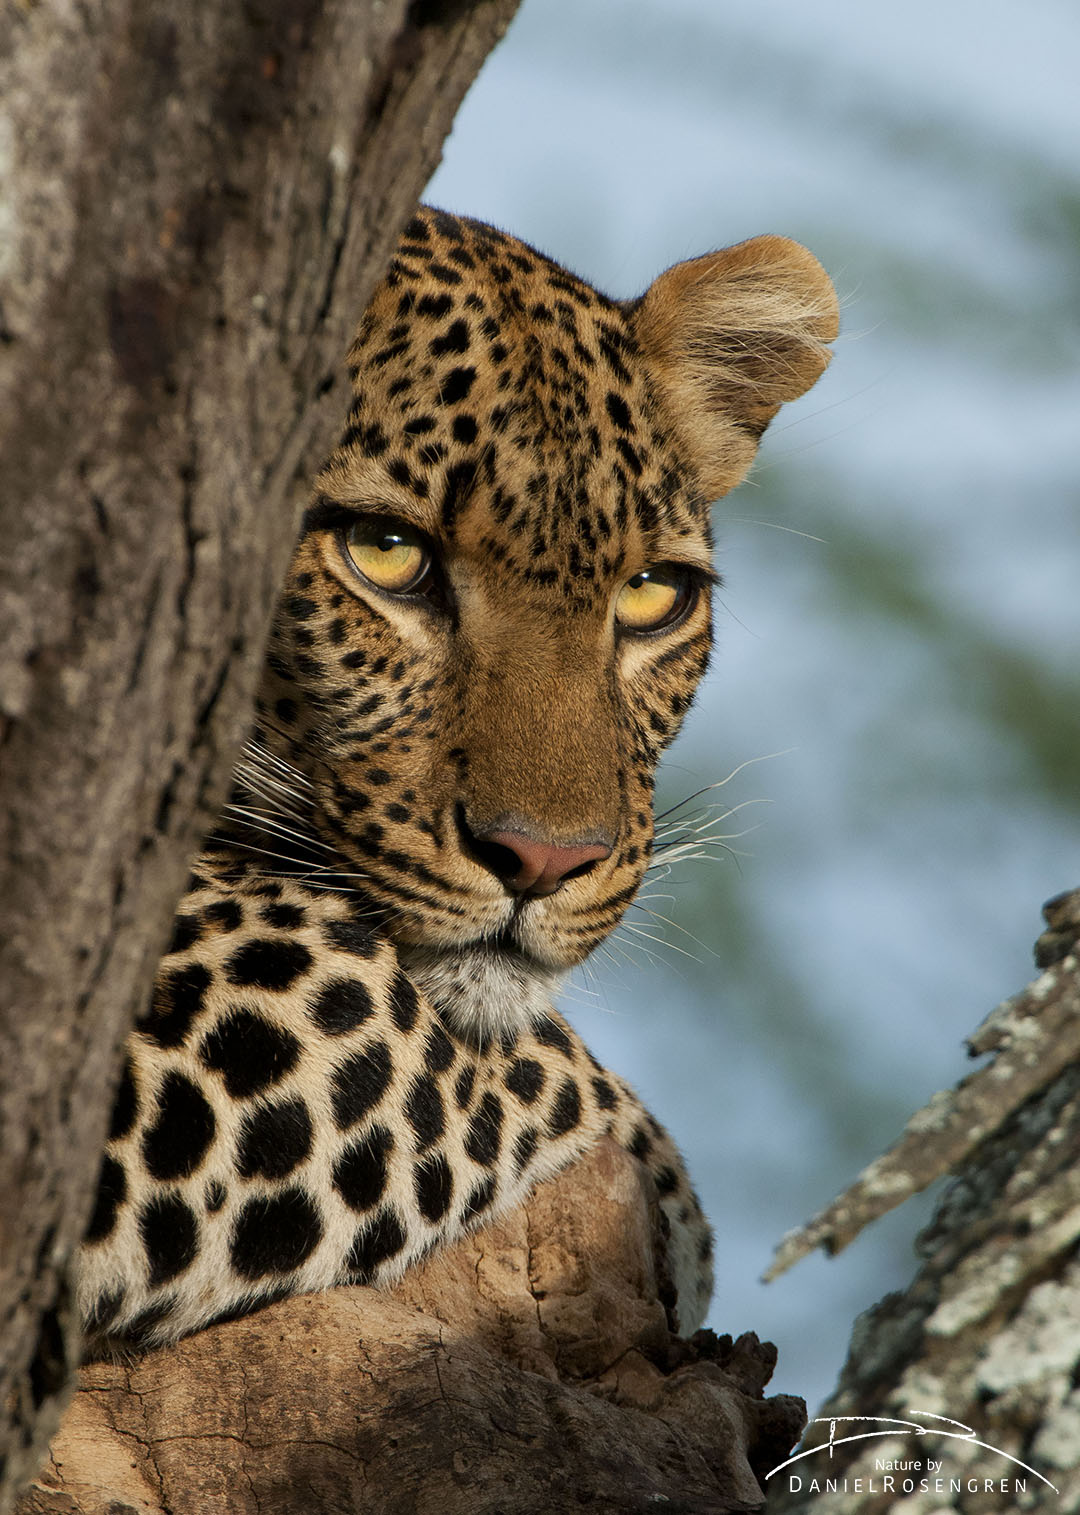 A young female leopard in a tree in Serengeti NP, Tanzania. © Daniel rosengren